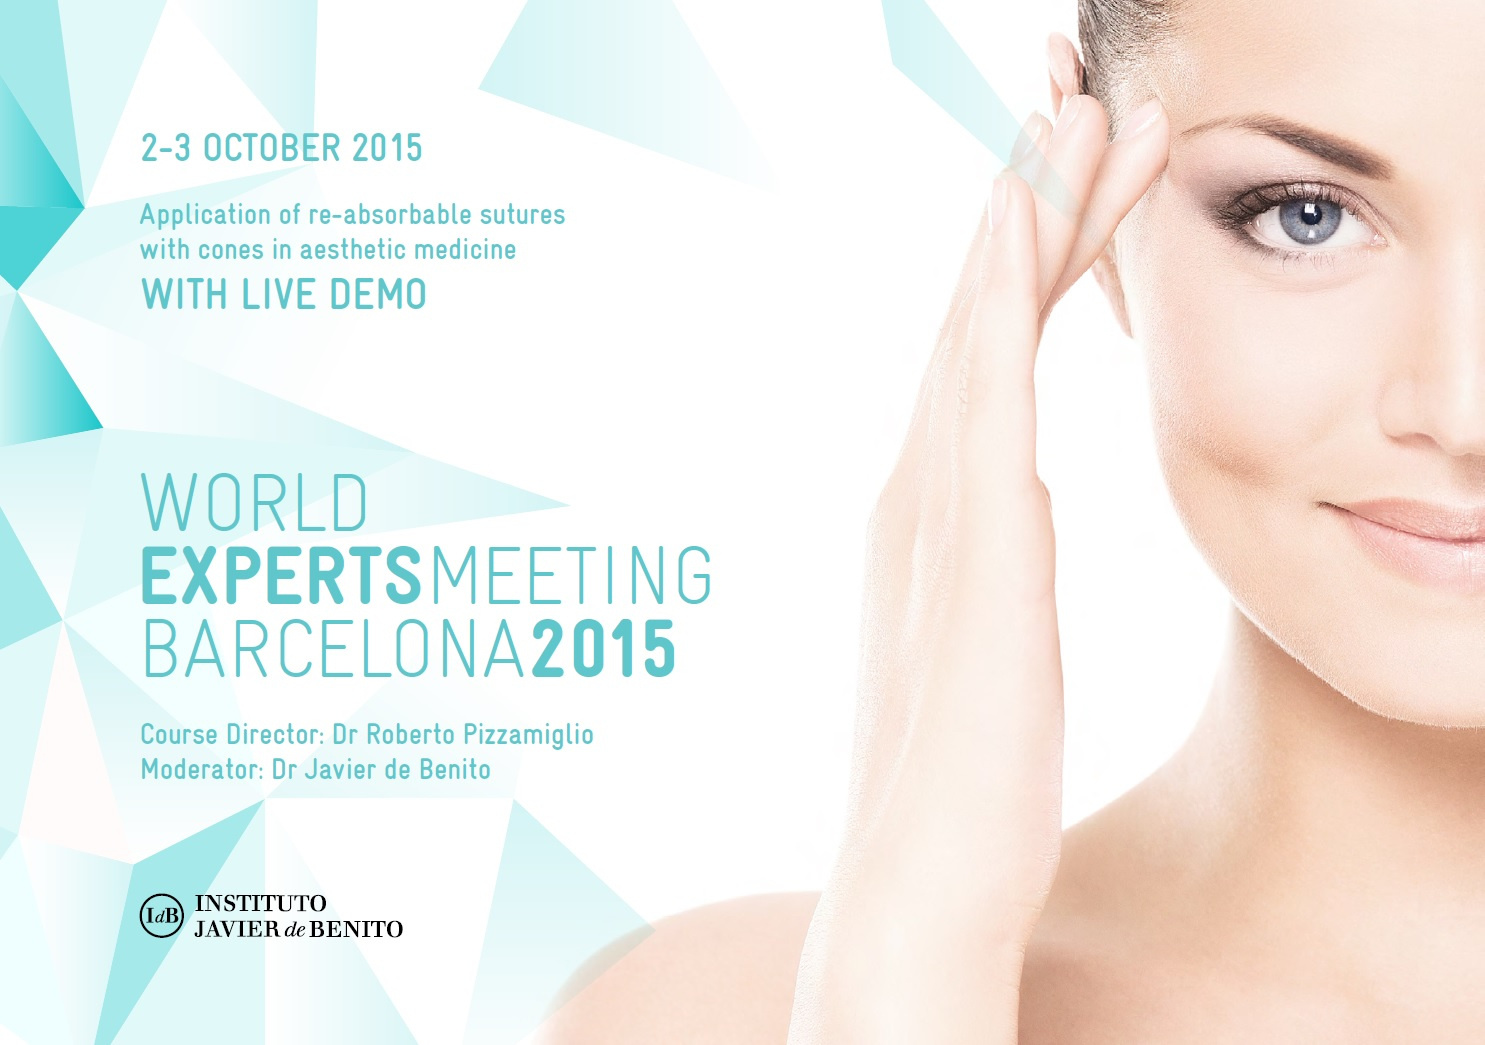 World Experts Meeting Barcelona 2015